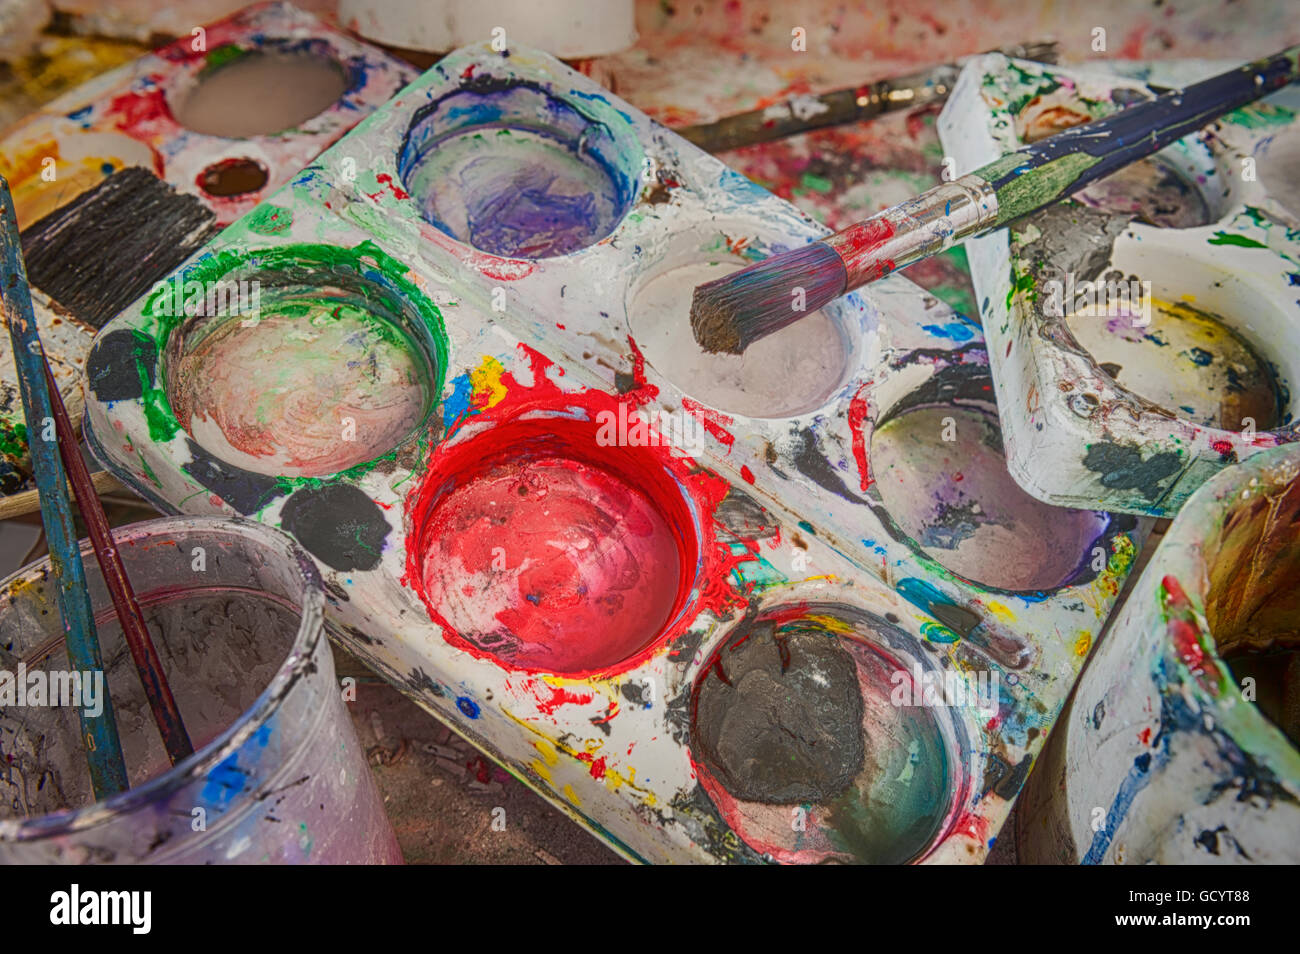 discarded left behind dirty paint brushes in butlers sink needing a serious clean and polish after messy art students - Stock Image